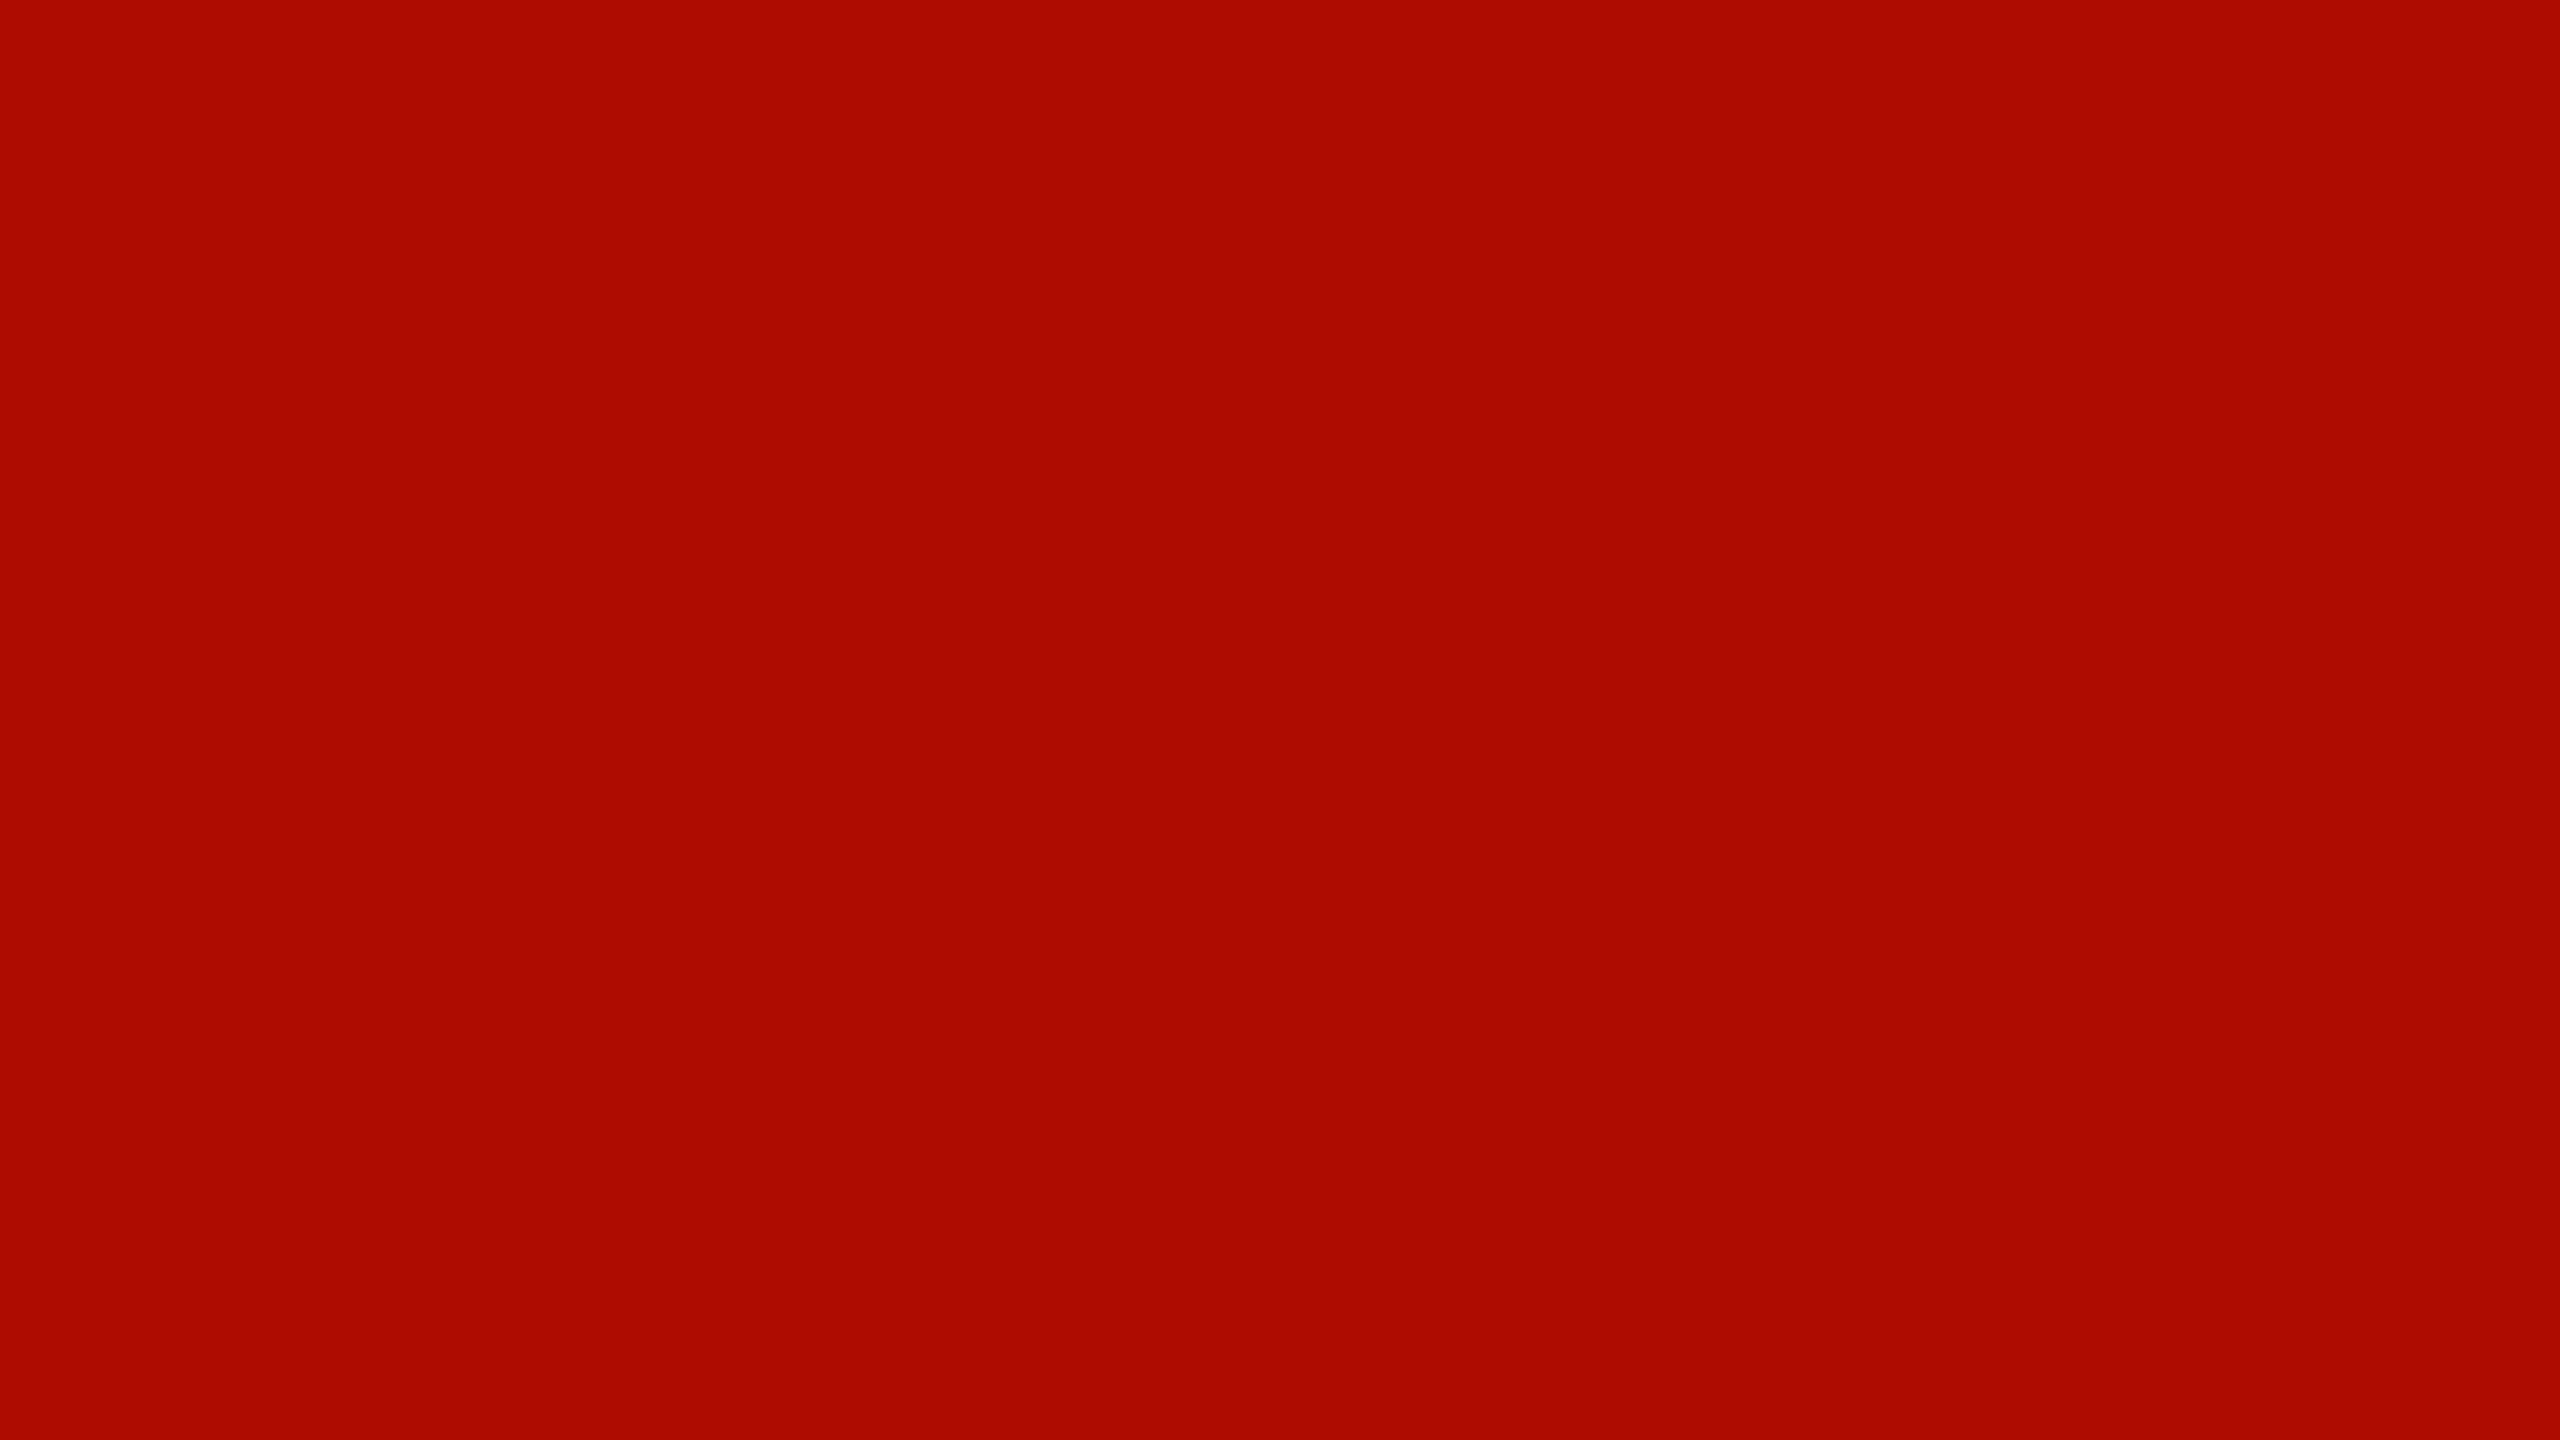 2560x1440 Mordant Red 19 Solid Color Background